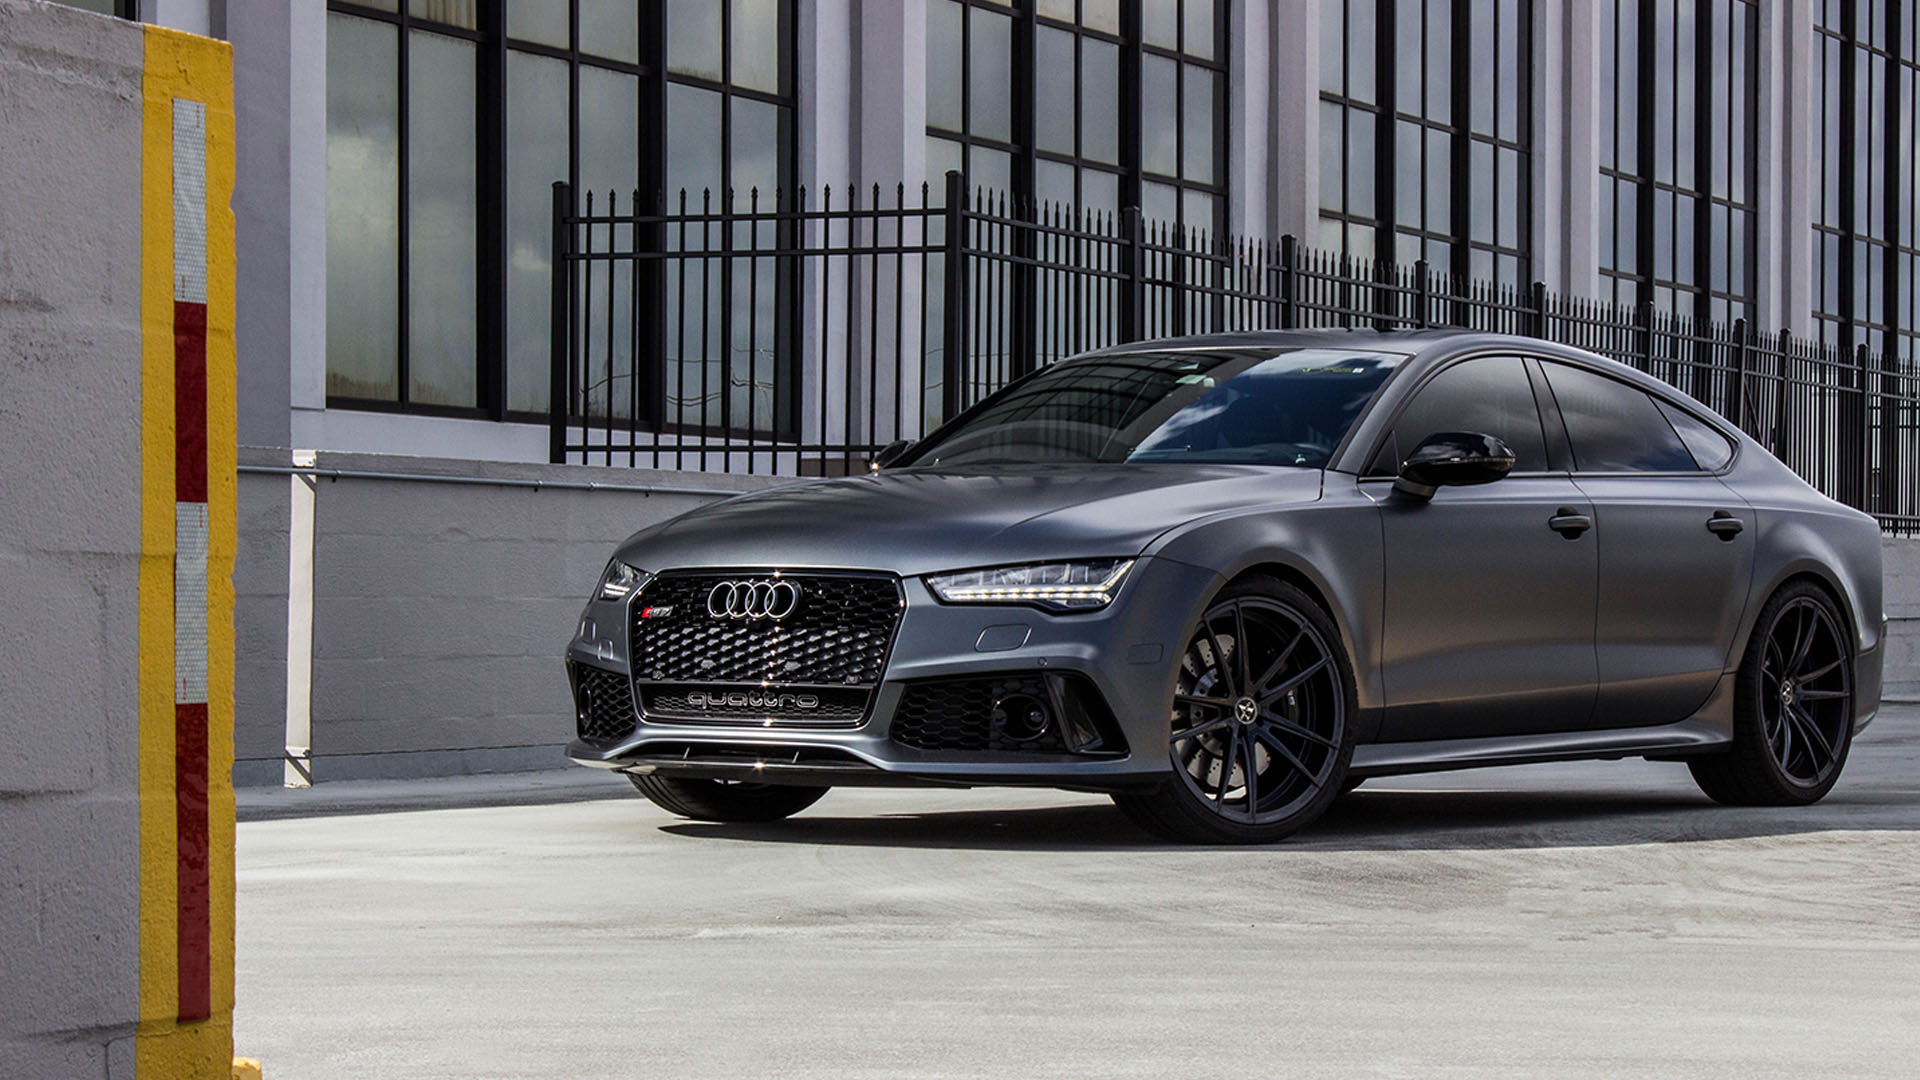 Audi RS7 With Vellano Forged Wheels VM35 Duoblock